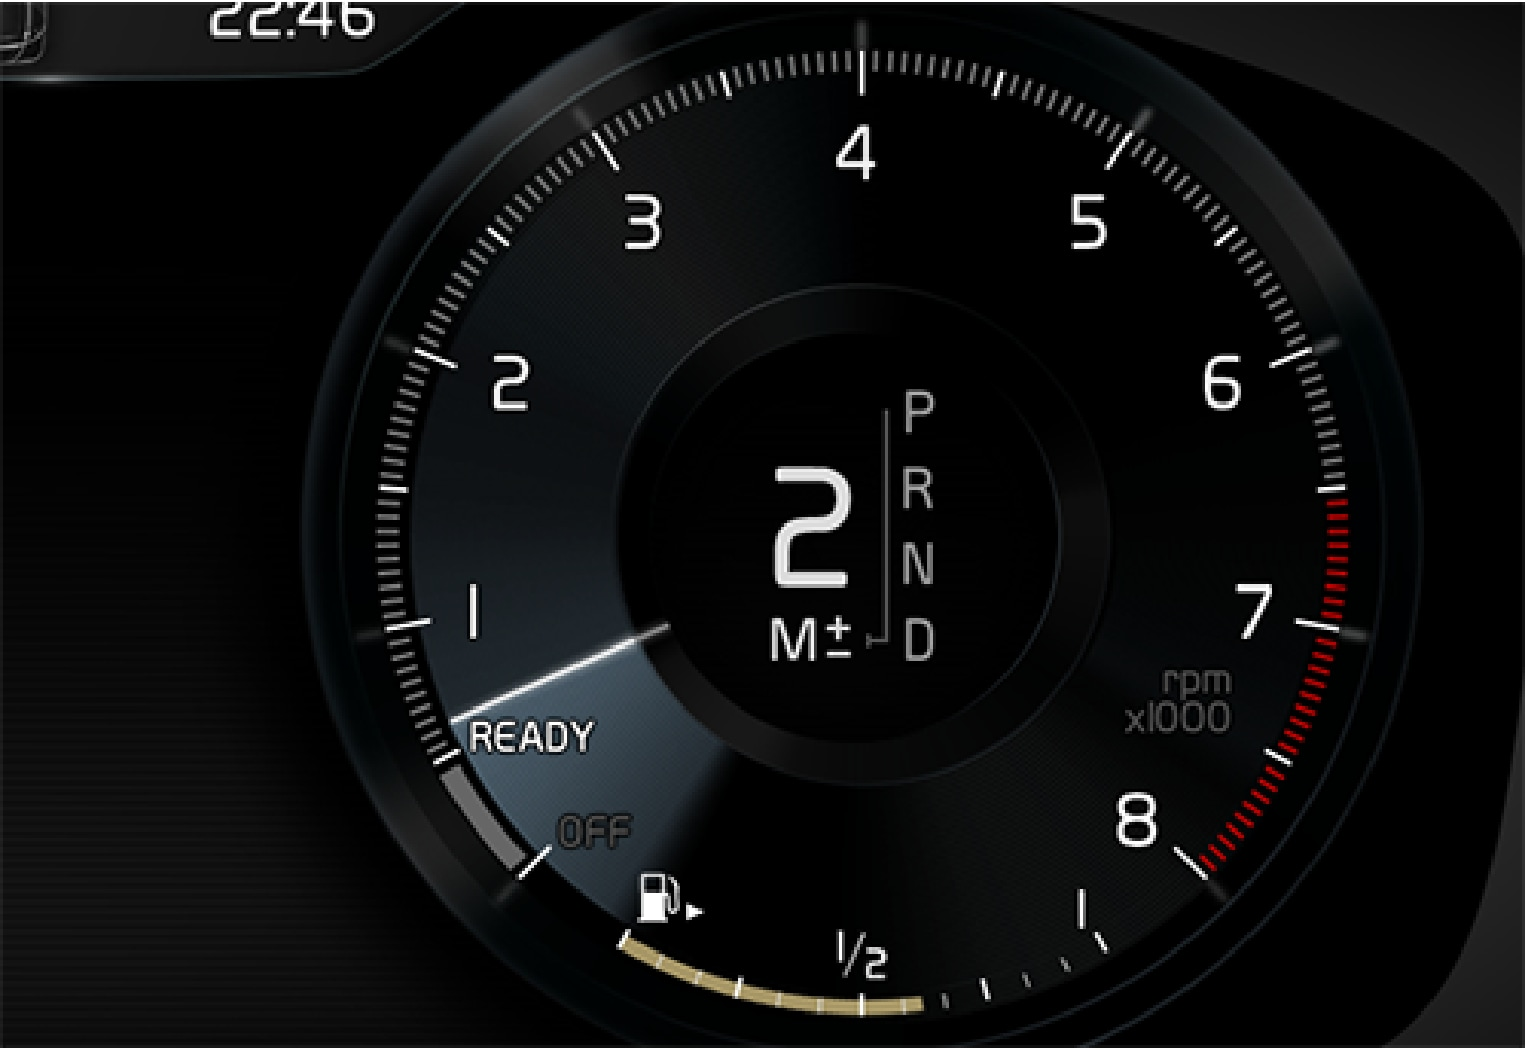 P5-1507-XC90- manual gear ind driver display